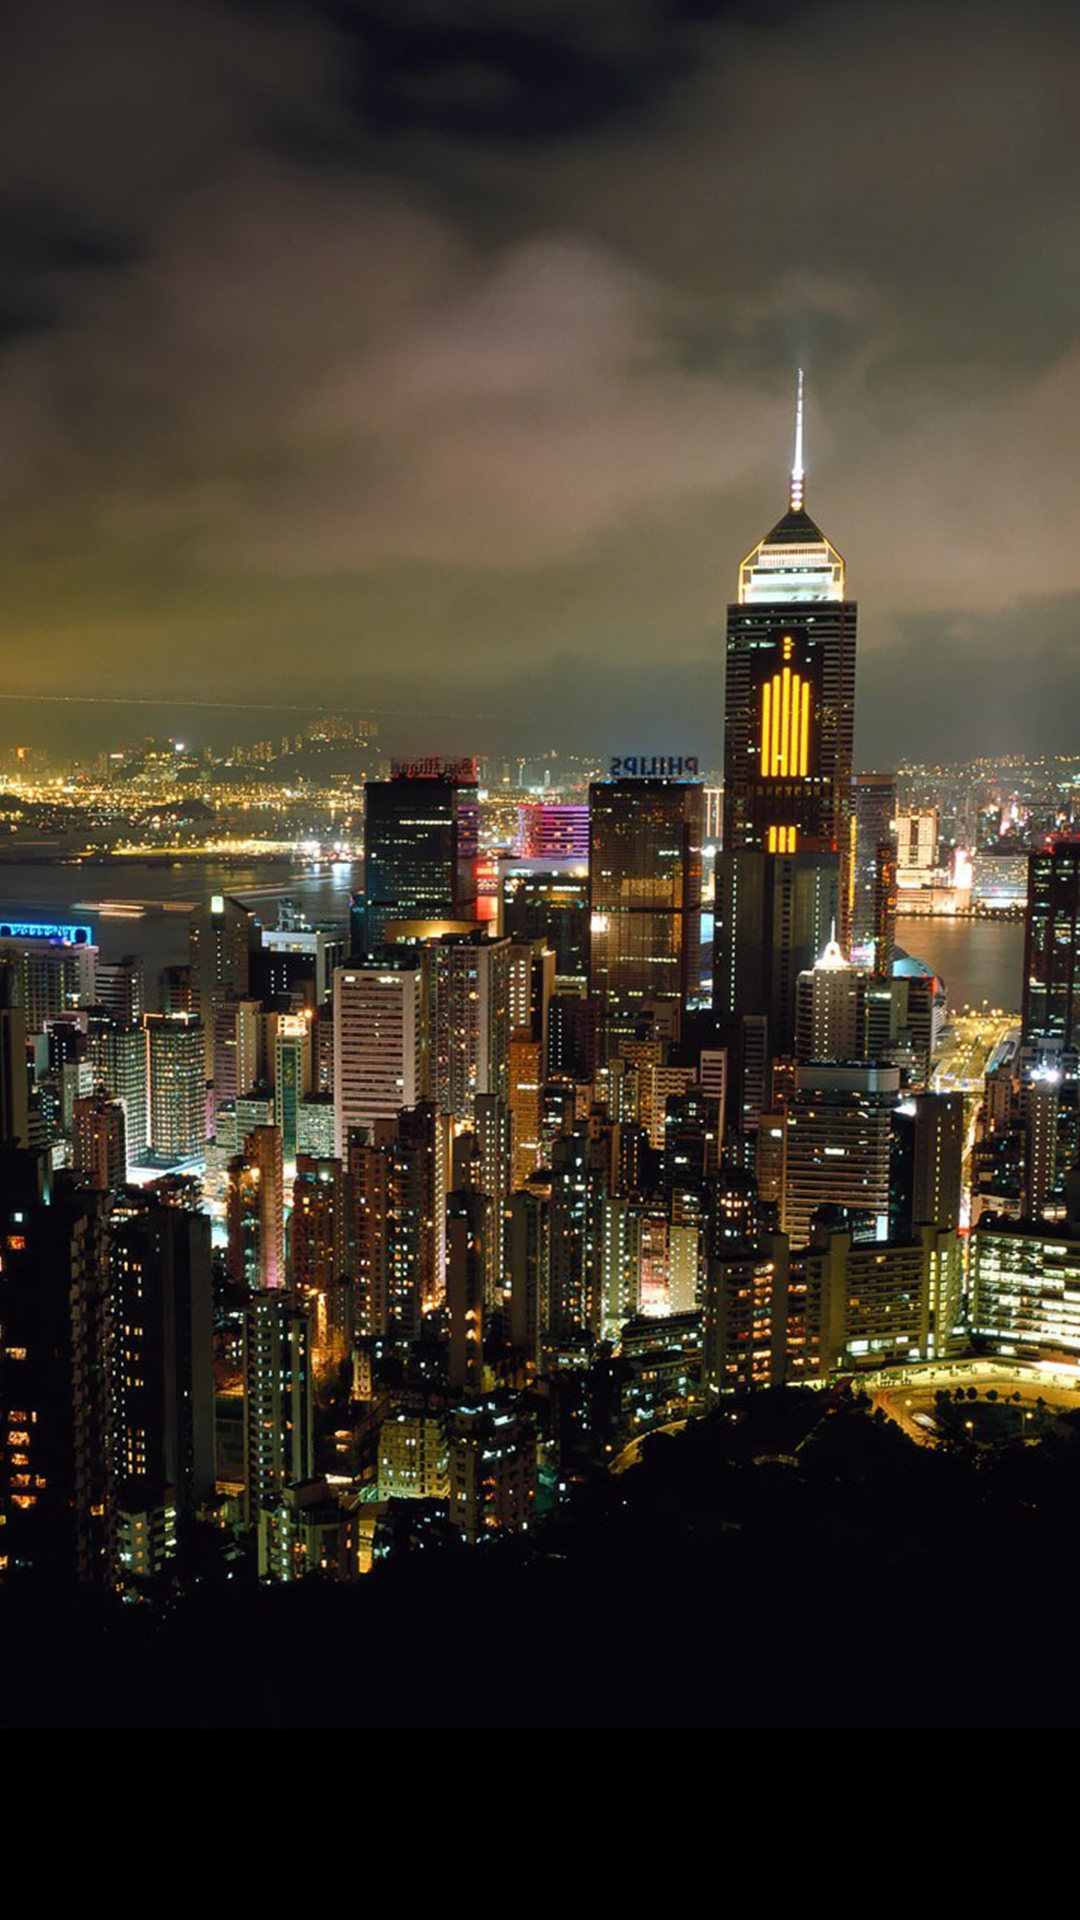 Download Our Hd Night City Wallpaper For Android Phones 0465